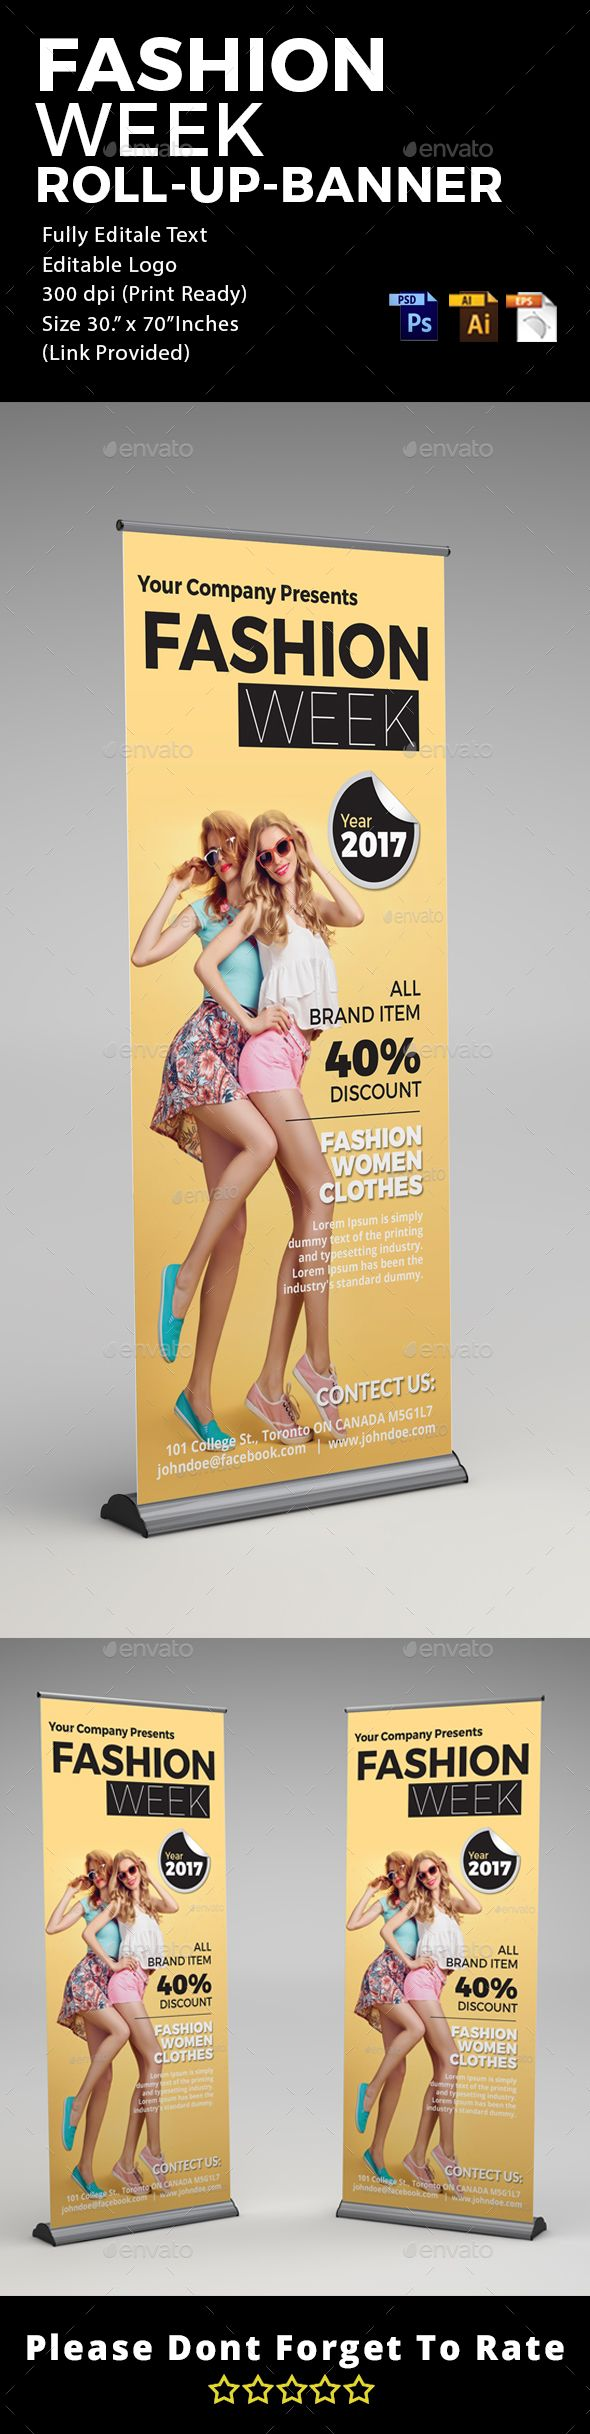 Fashion - Roll Up Banner Signage by mischievousdesigns Fashion – Roll Up Banner Signage Template. This layout is suitable for any business. Very easy to use and customize. ............